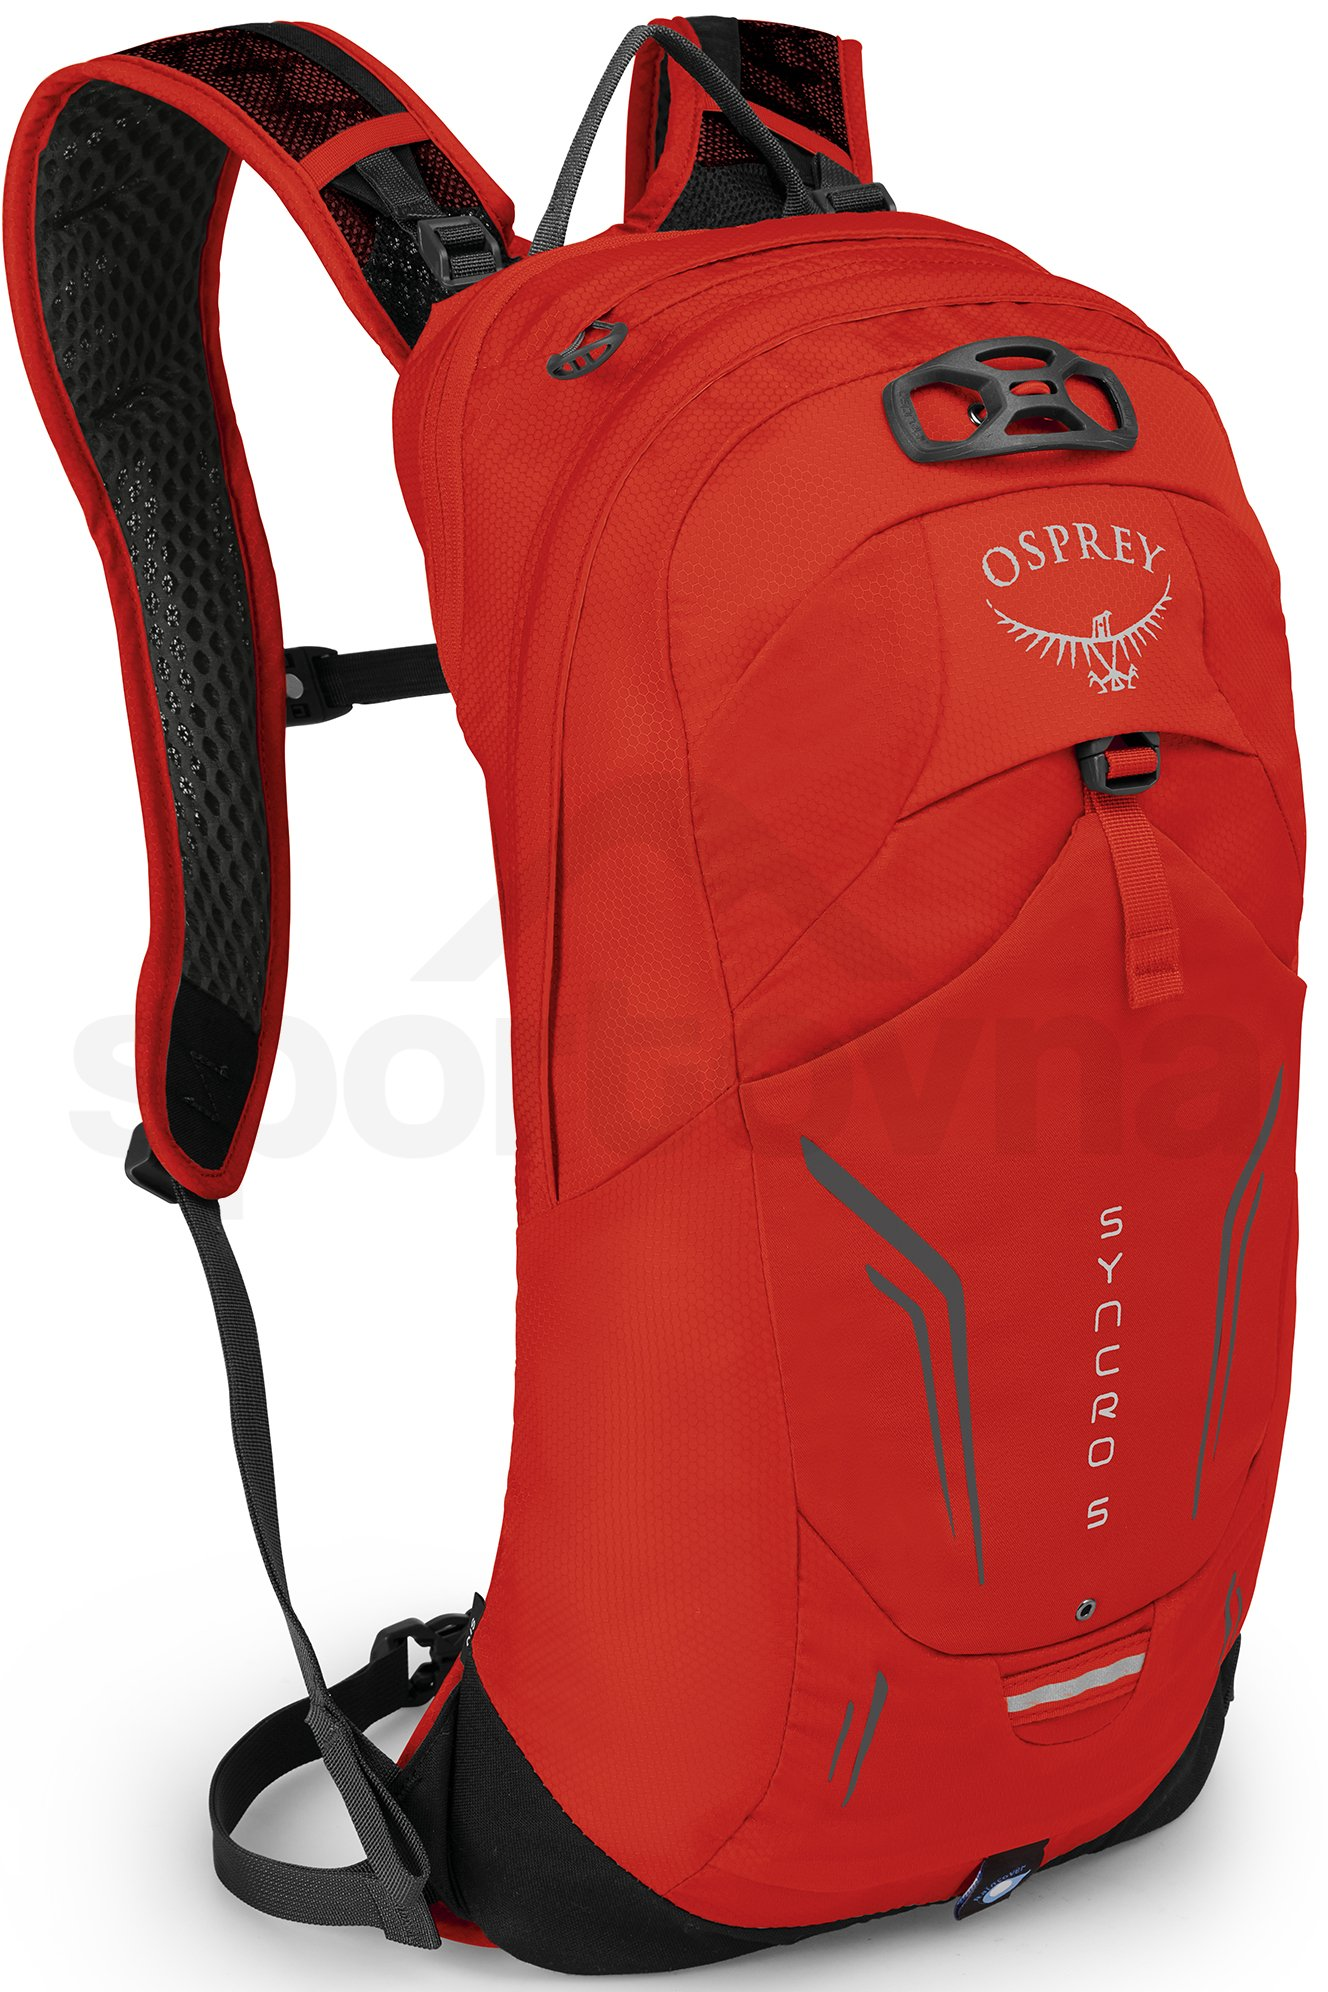 Syncro_5_S19_Side_Firebelly_Red